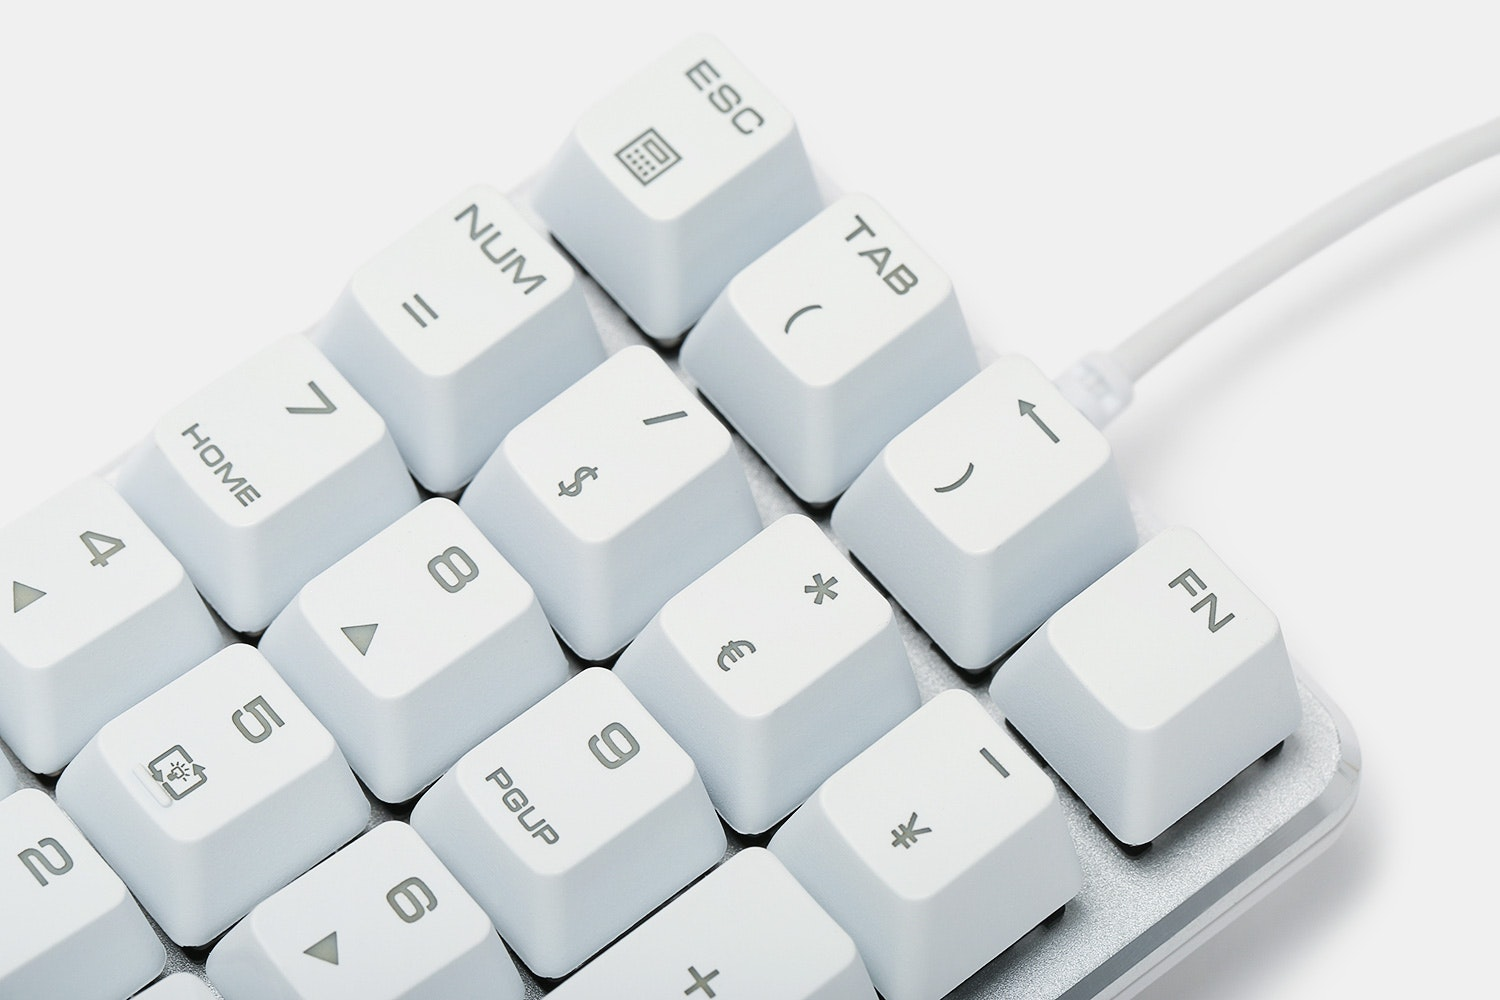 Magicforce 21-Key Mechanical Numpad